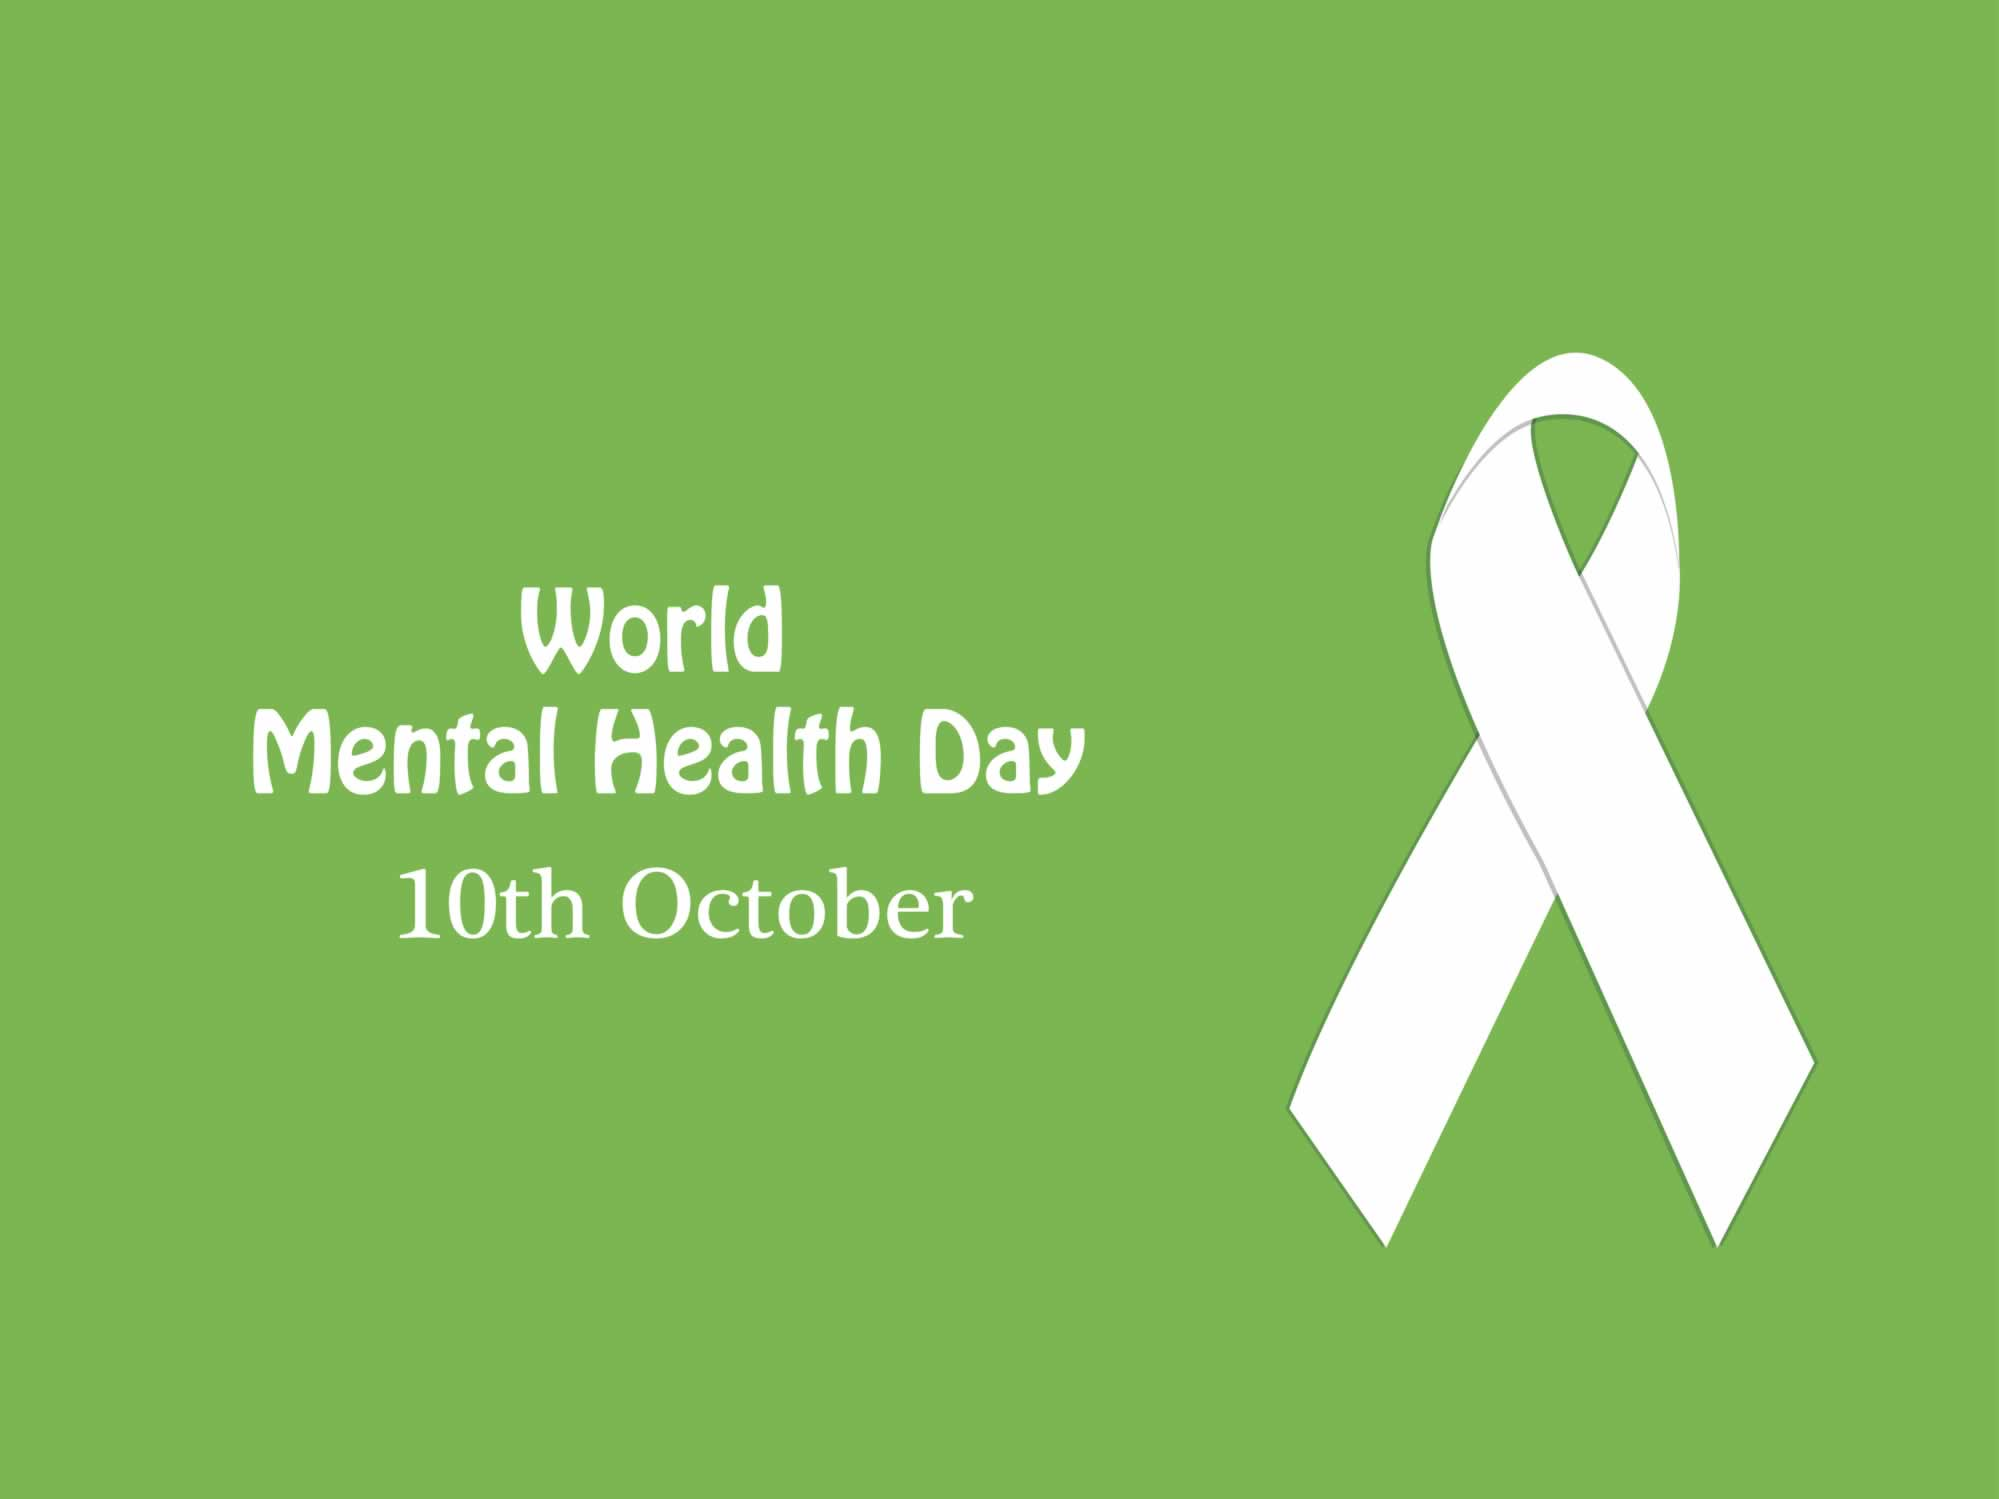 World Mental Health Day October 10th